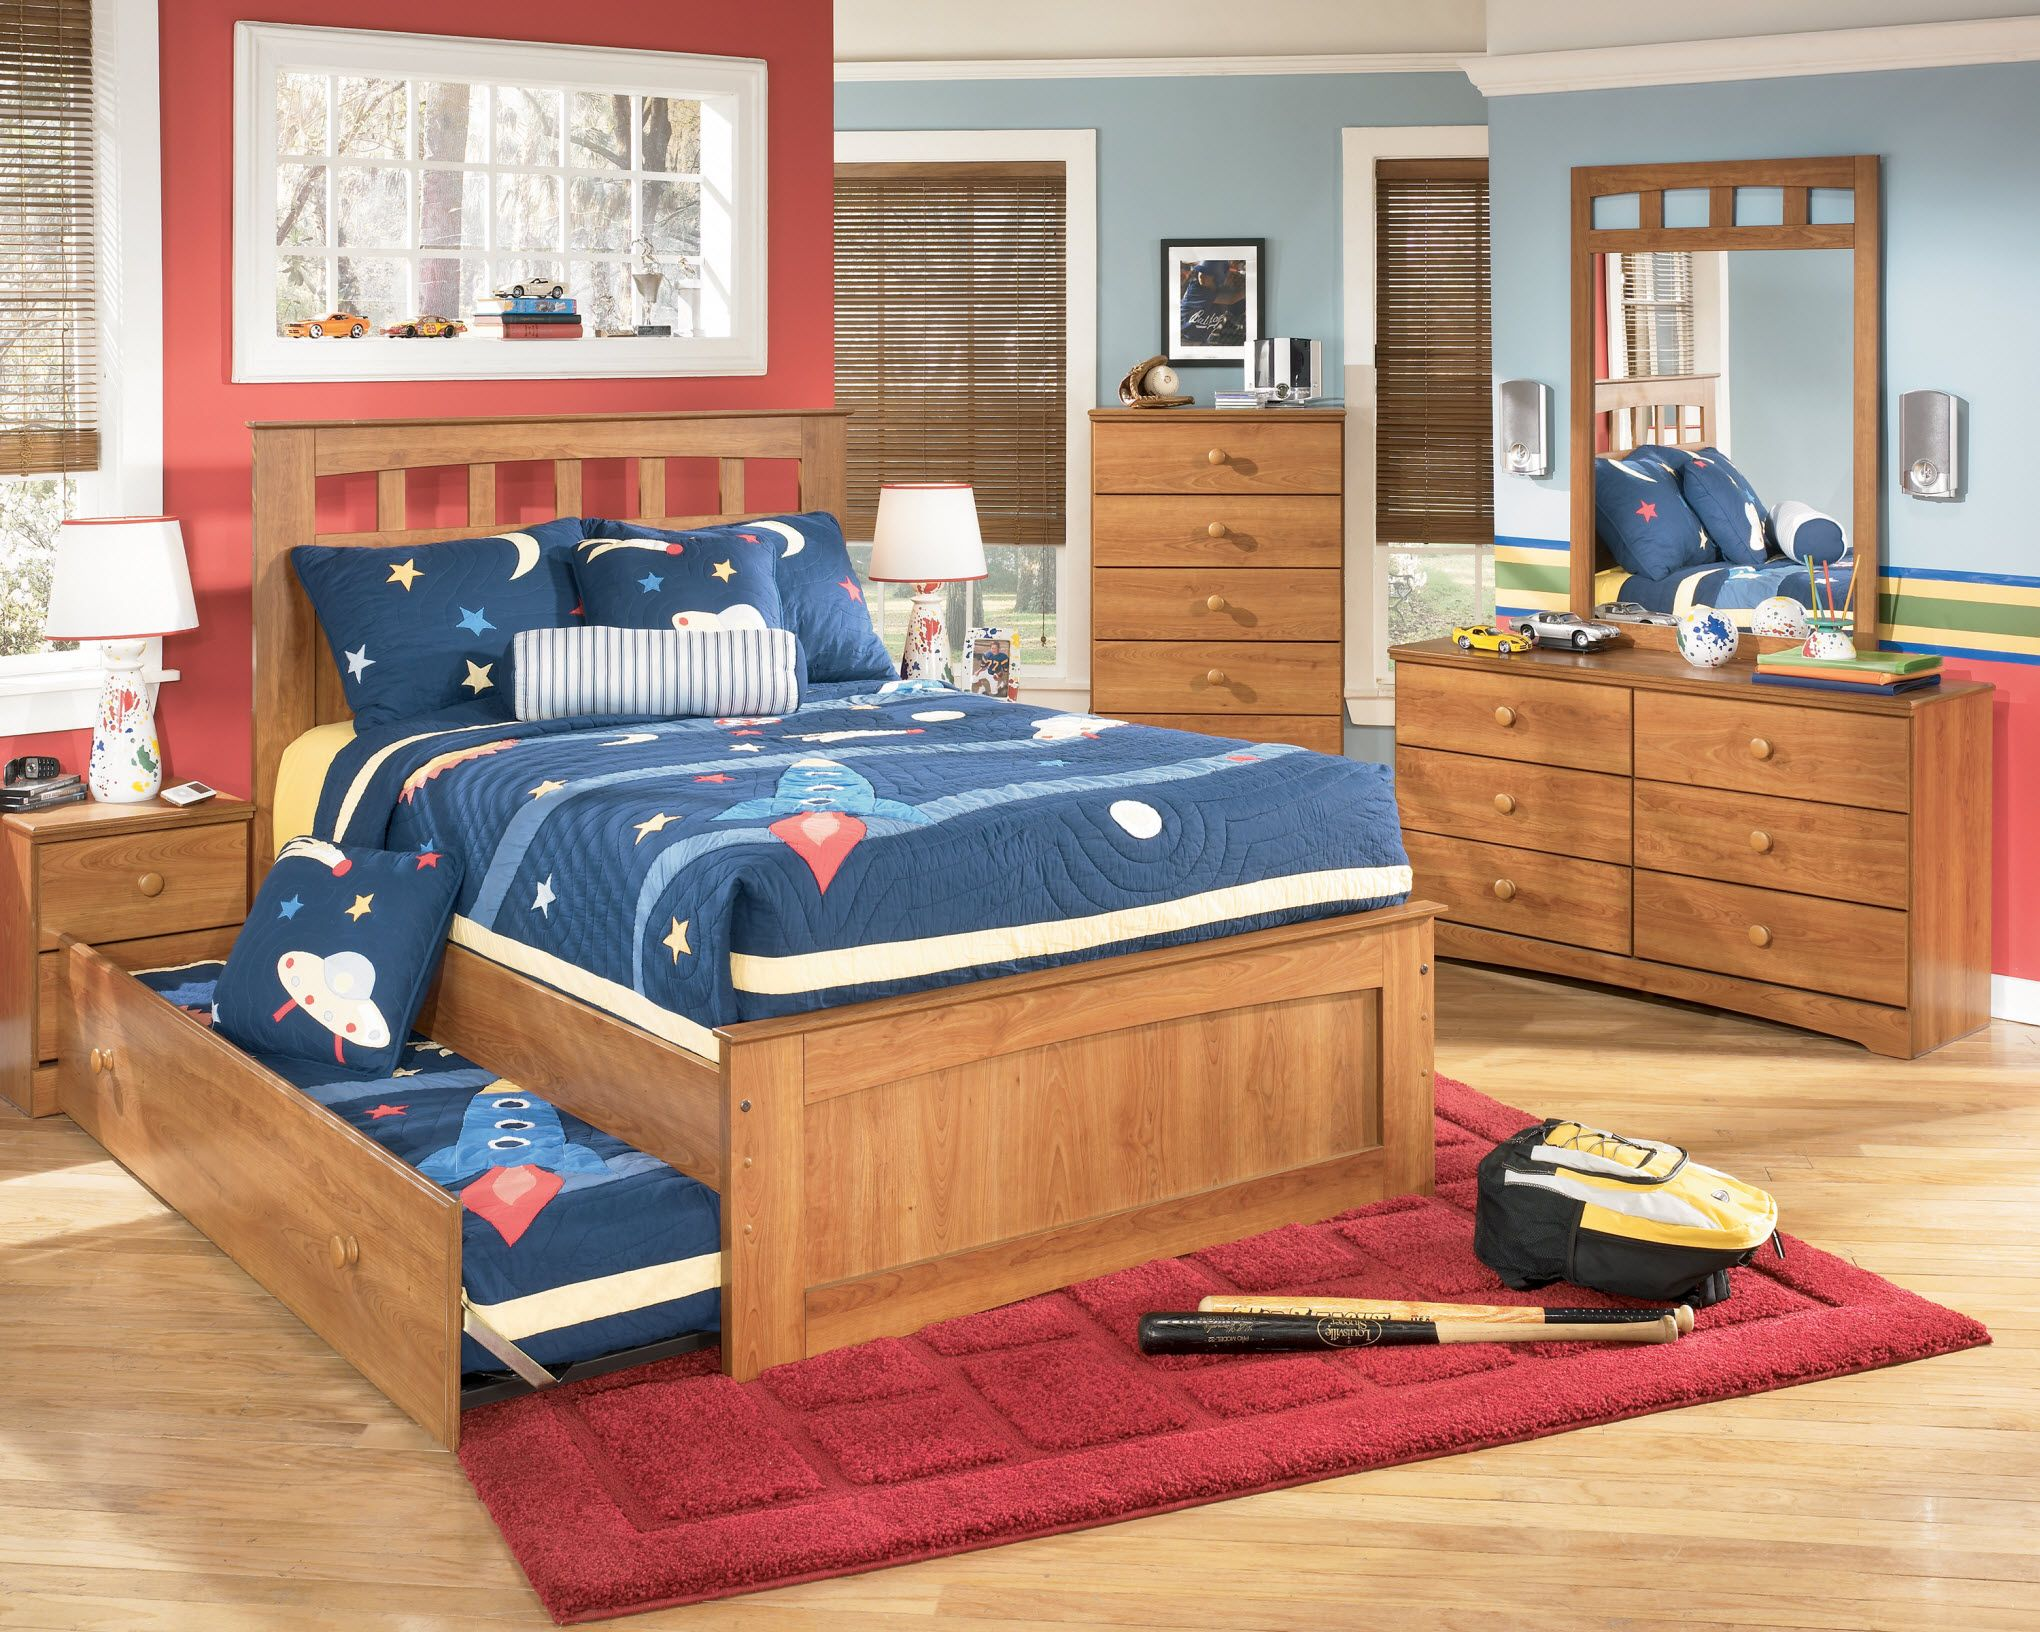 Teenage boys bedroom furniture - 16 Cool Boys Bedroom Sets Ideas Ome Speak Boys Bedroom Sets Boys Bedroom Sets With Regard To Really Encourage